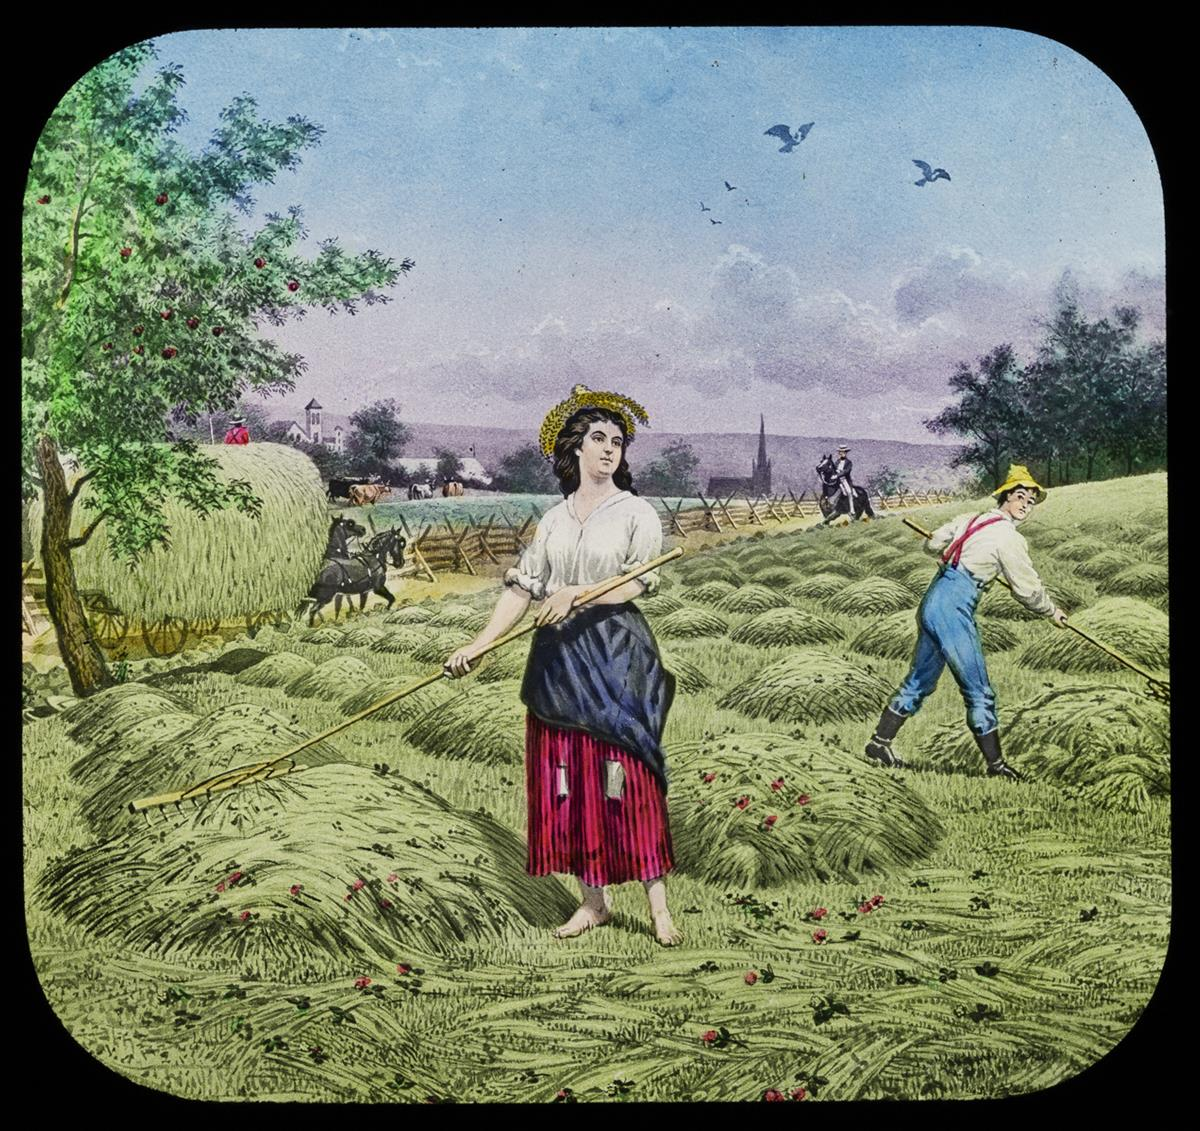 Colorful image of woman raking hay in a field, with other people, horses, and wagons nearby